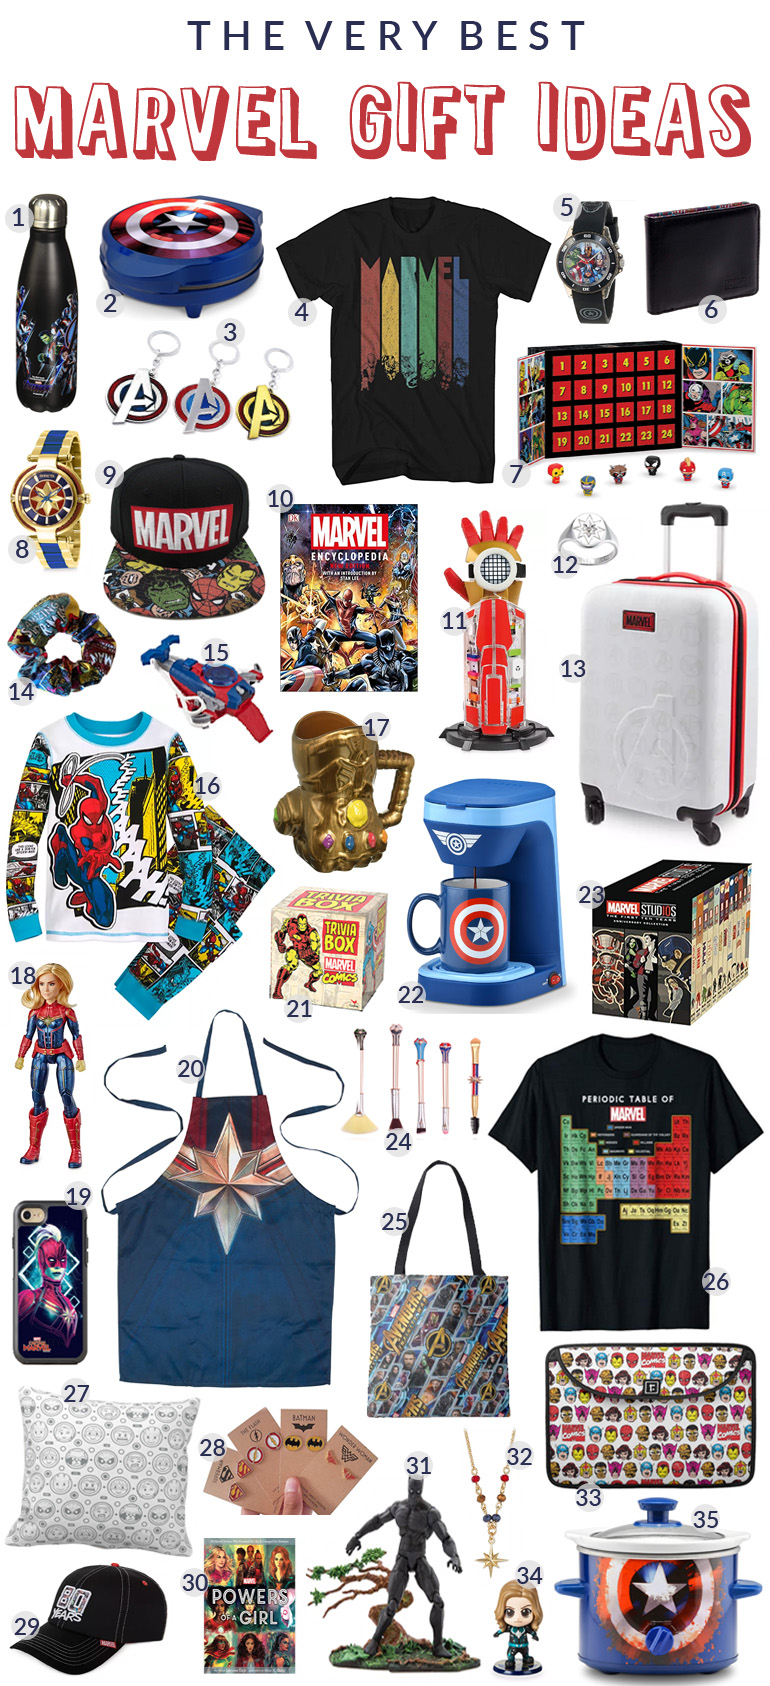 35 Amazing Marvel Gift Ideas featured by top US Disney blogger, Marcie and the Mouse | Marvel gift ideas featuring Spider-Man, Iron Man, Captain America, Captain Marvel, the Hulk, the Avengers, and More